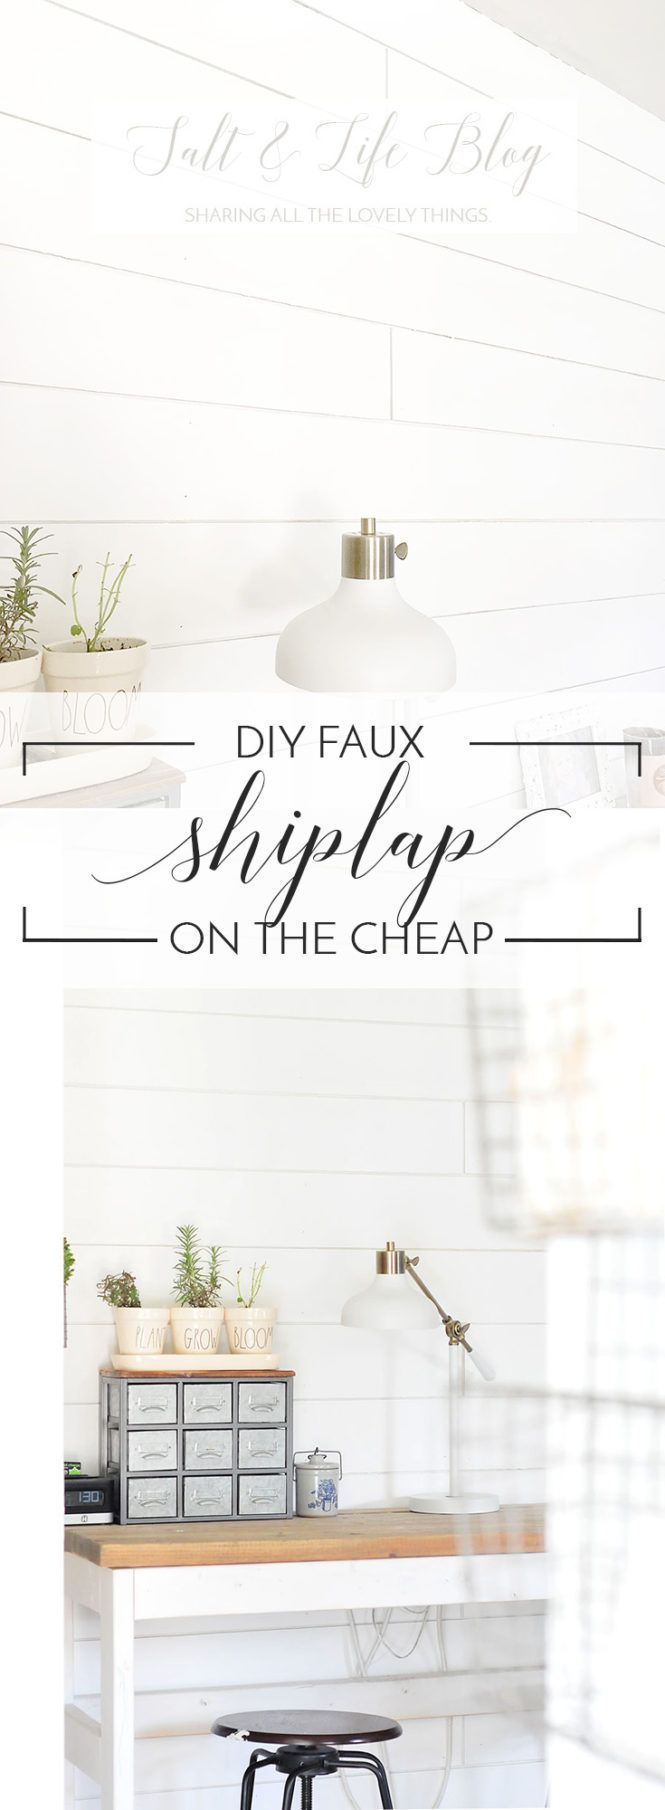 DIY Faux Shiplap on the Cheap | THE JUNQ DRAWER